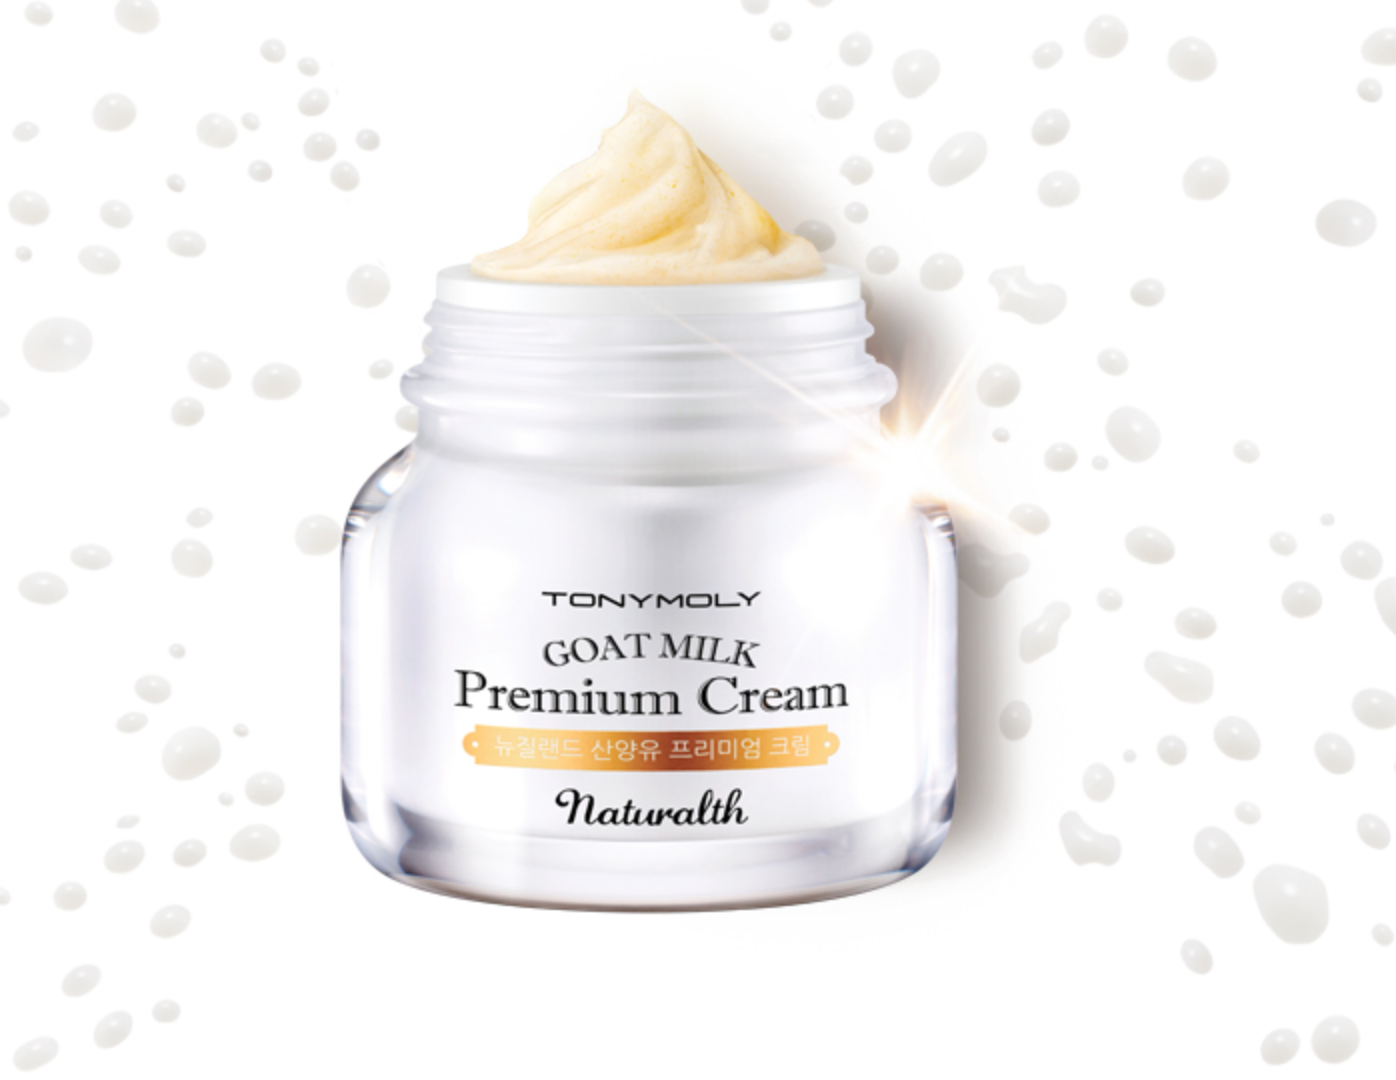 Index Of Jjj Image Cosmetics Tonymoly Tony Moly Berrianne Cream Naturalth Goat Milk Premium 60ml D